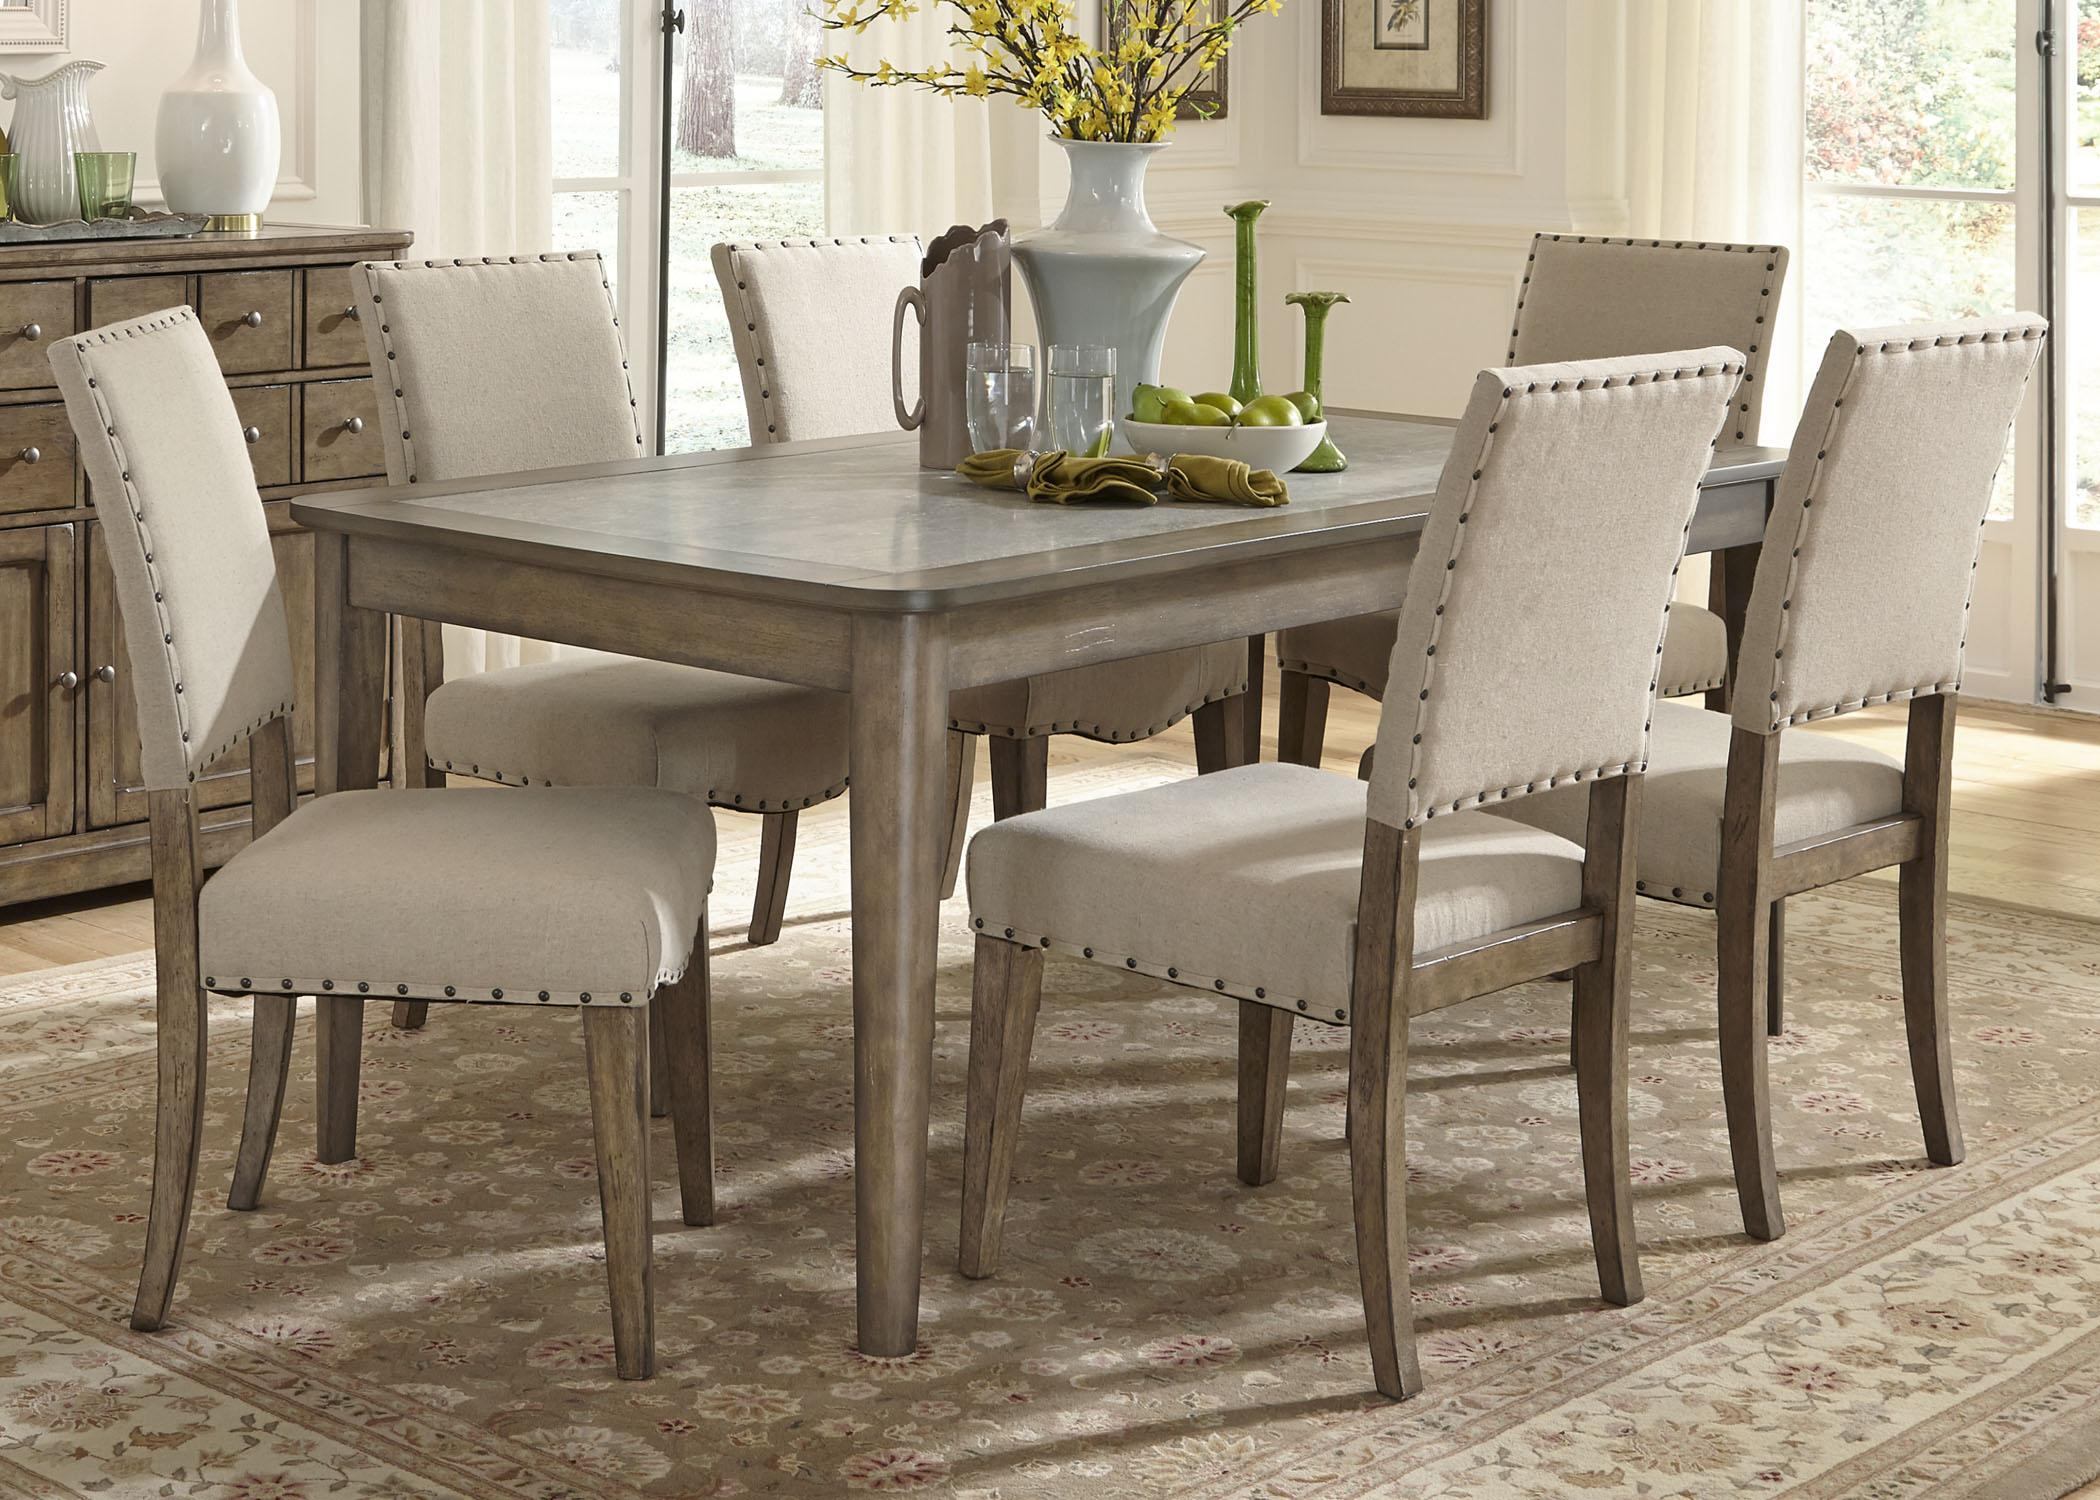 Wonderful Casual Rustic 7 Piece Dining Table And Chairs Set